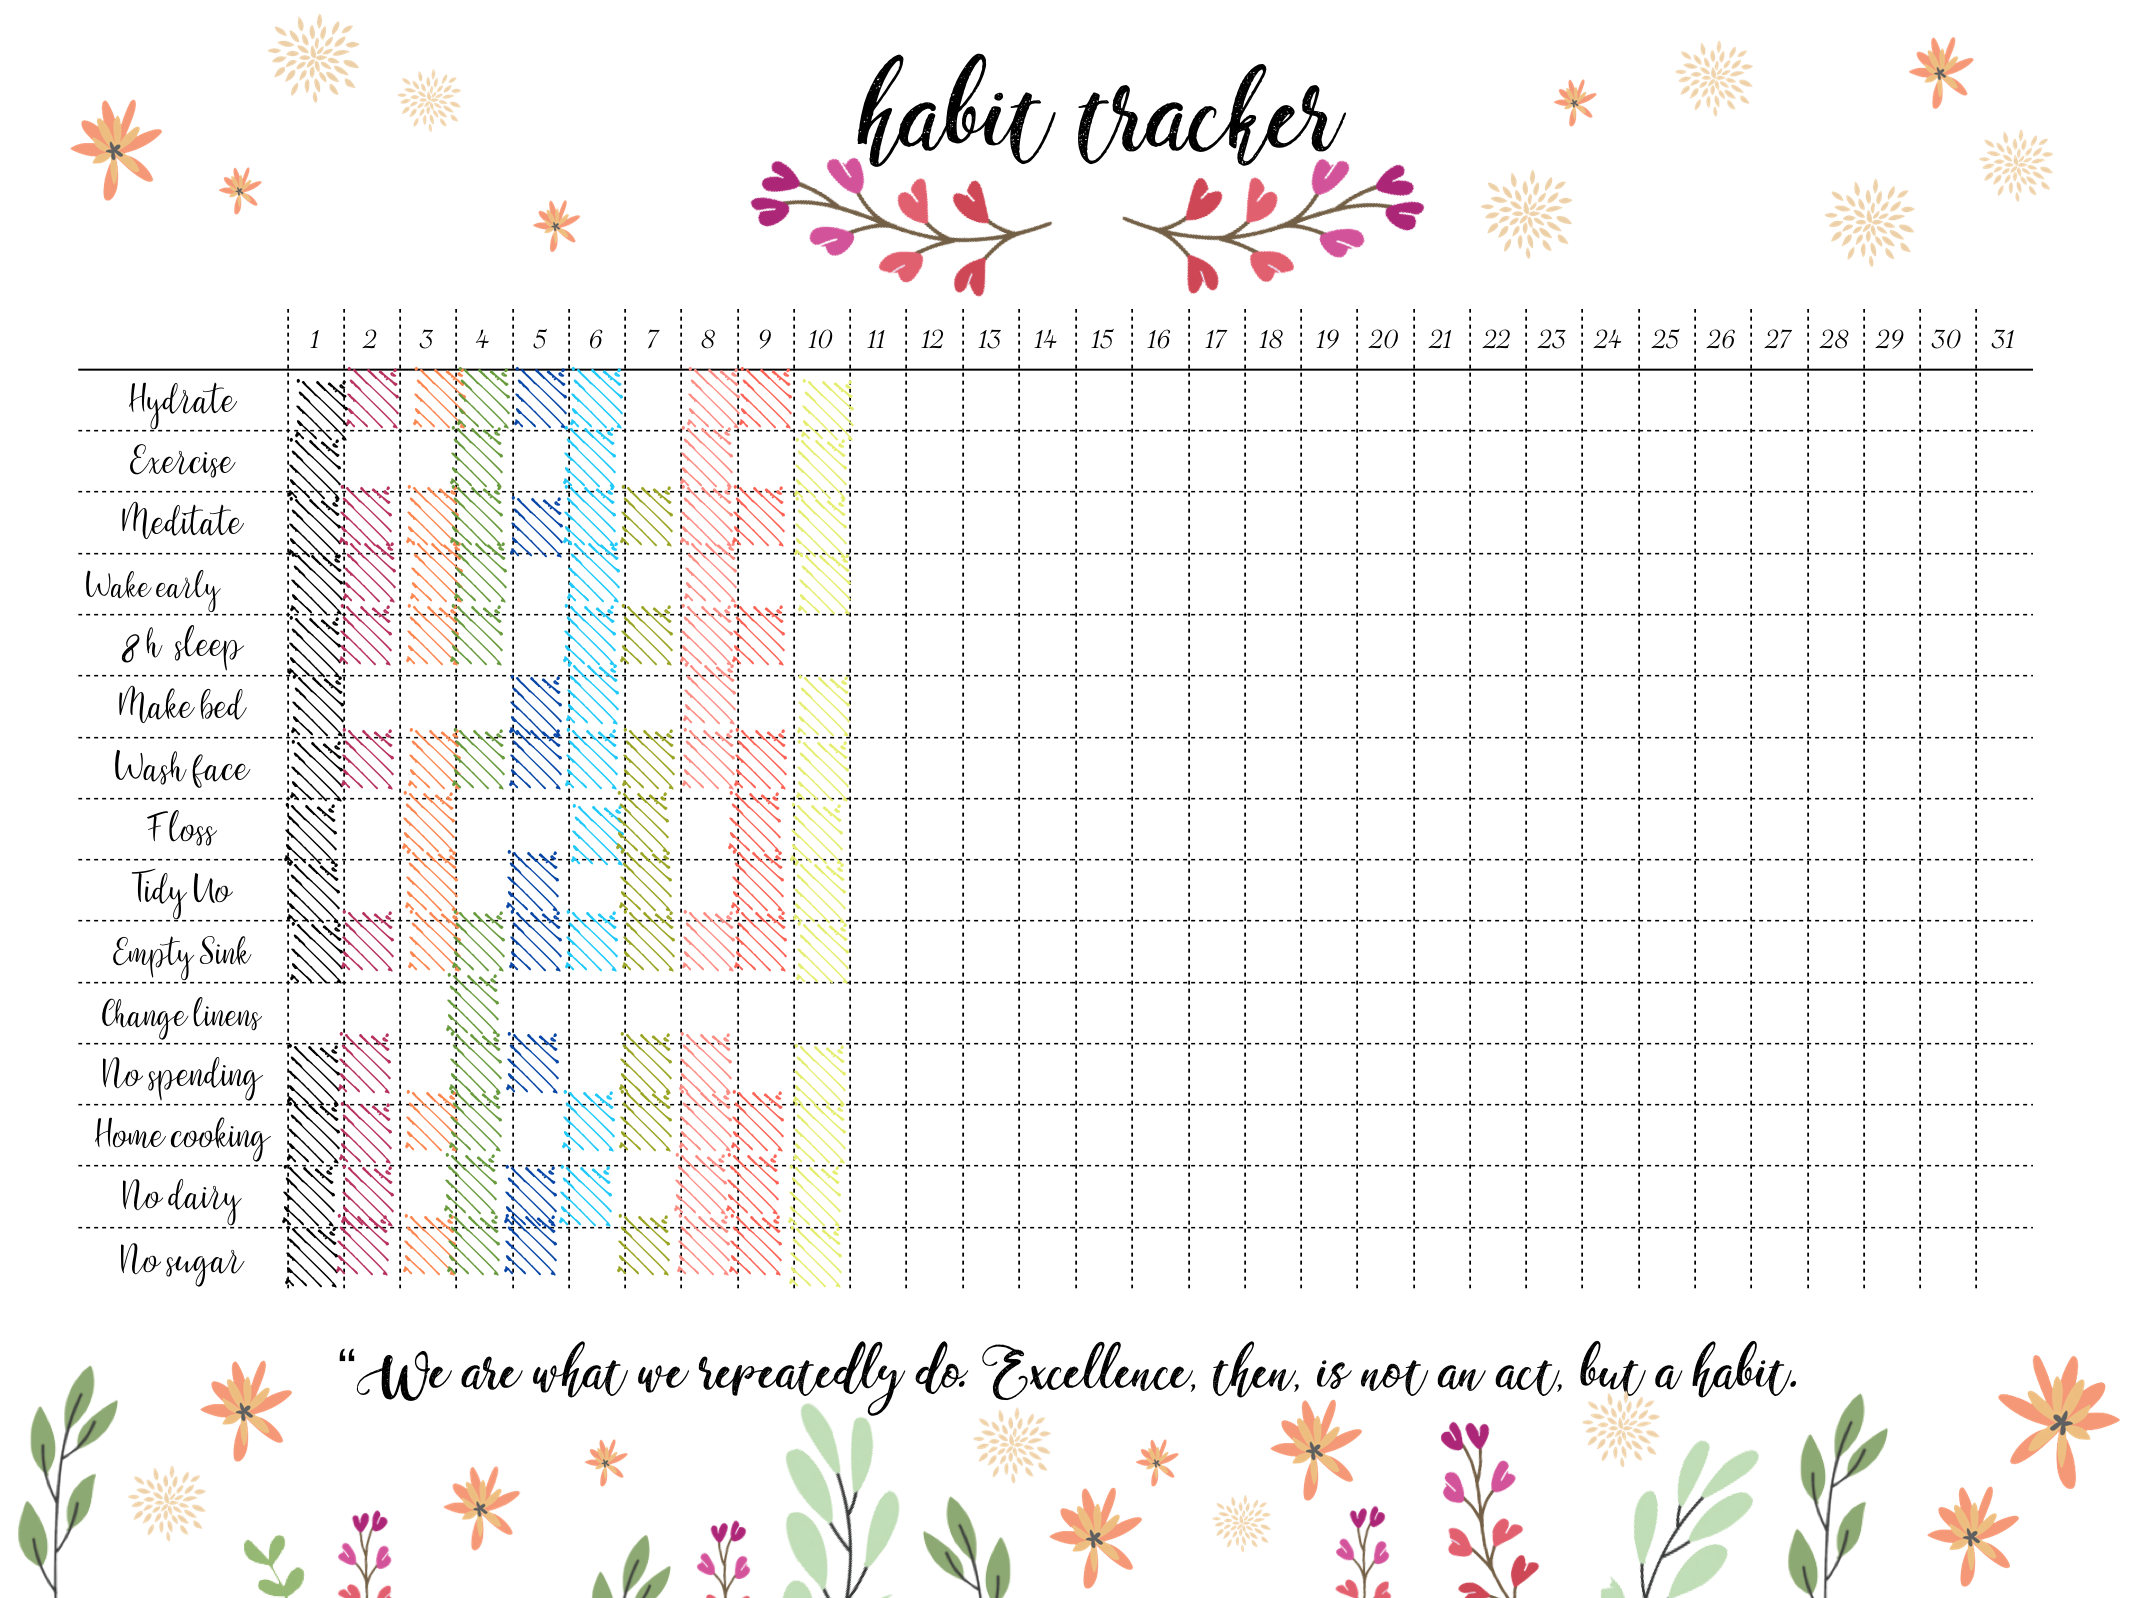 photo about Bullet Journal Habit Tracker Printable named 20+ Bullet Magazine Plans: Artistic Tracker Charts